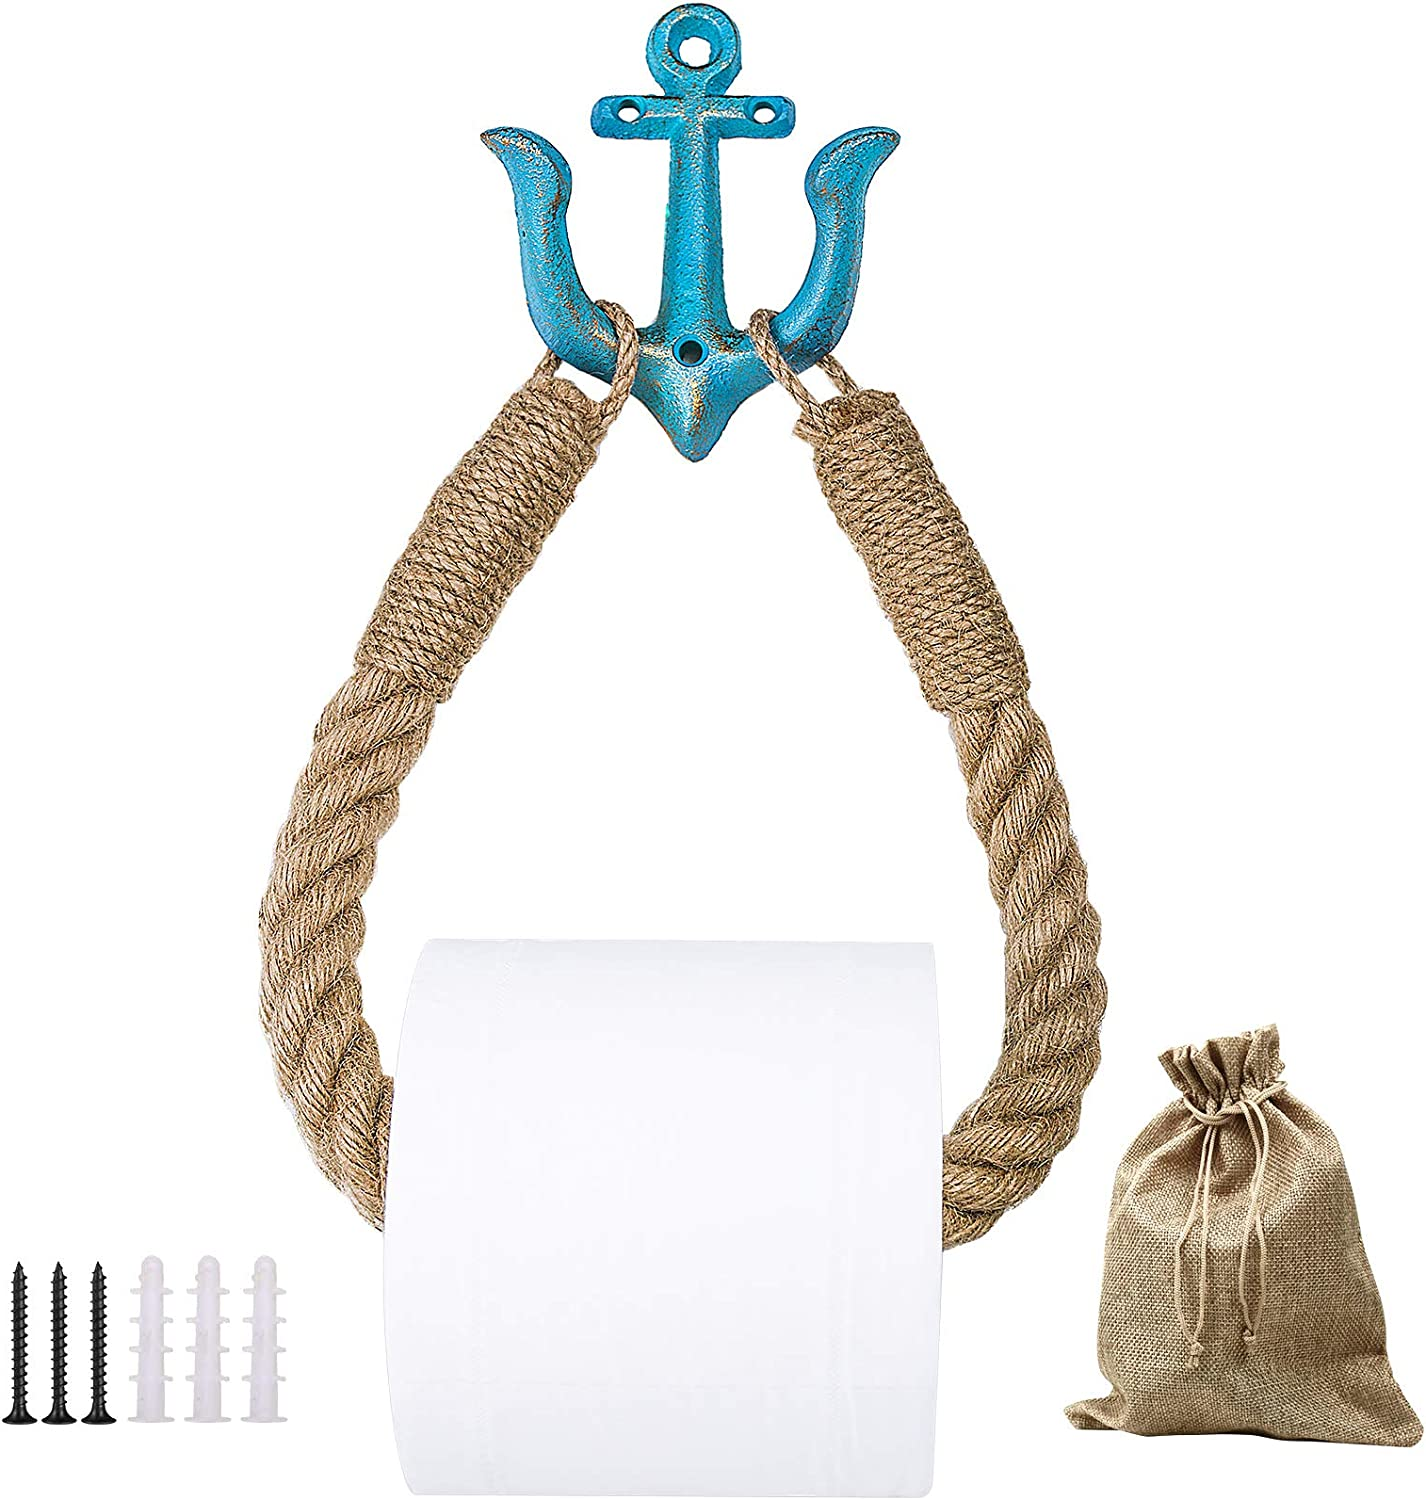 Nautical Toilet Paper Holder Wall-Mounted Rope Paper Roll Holder and Towel Holder for Bathroom, Natural Rustic Jute Rope with Anchor Decor for Nautical Beach Seaside Themed Bathroom (Blue)